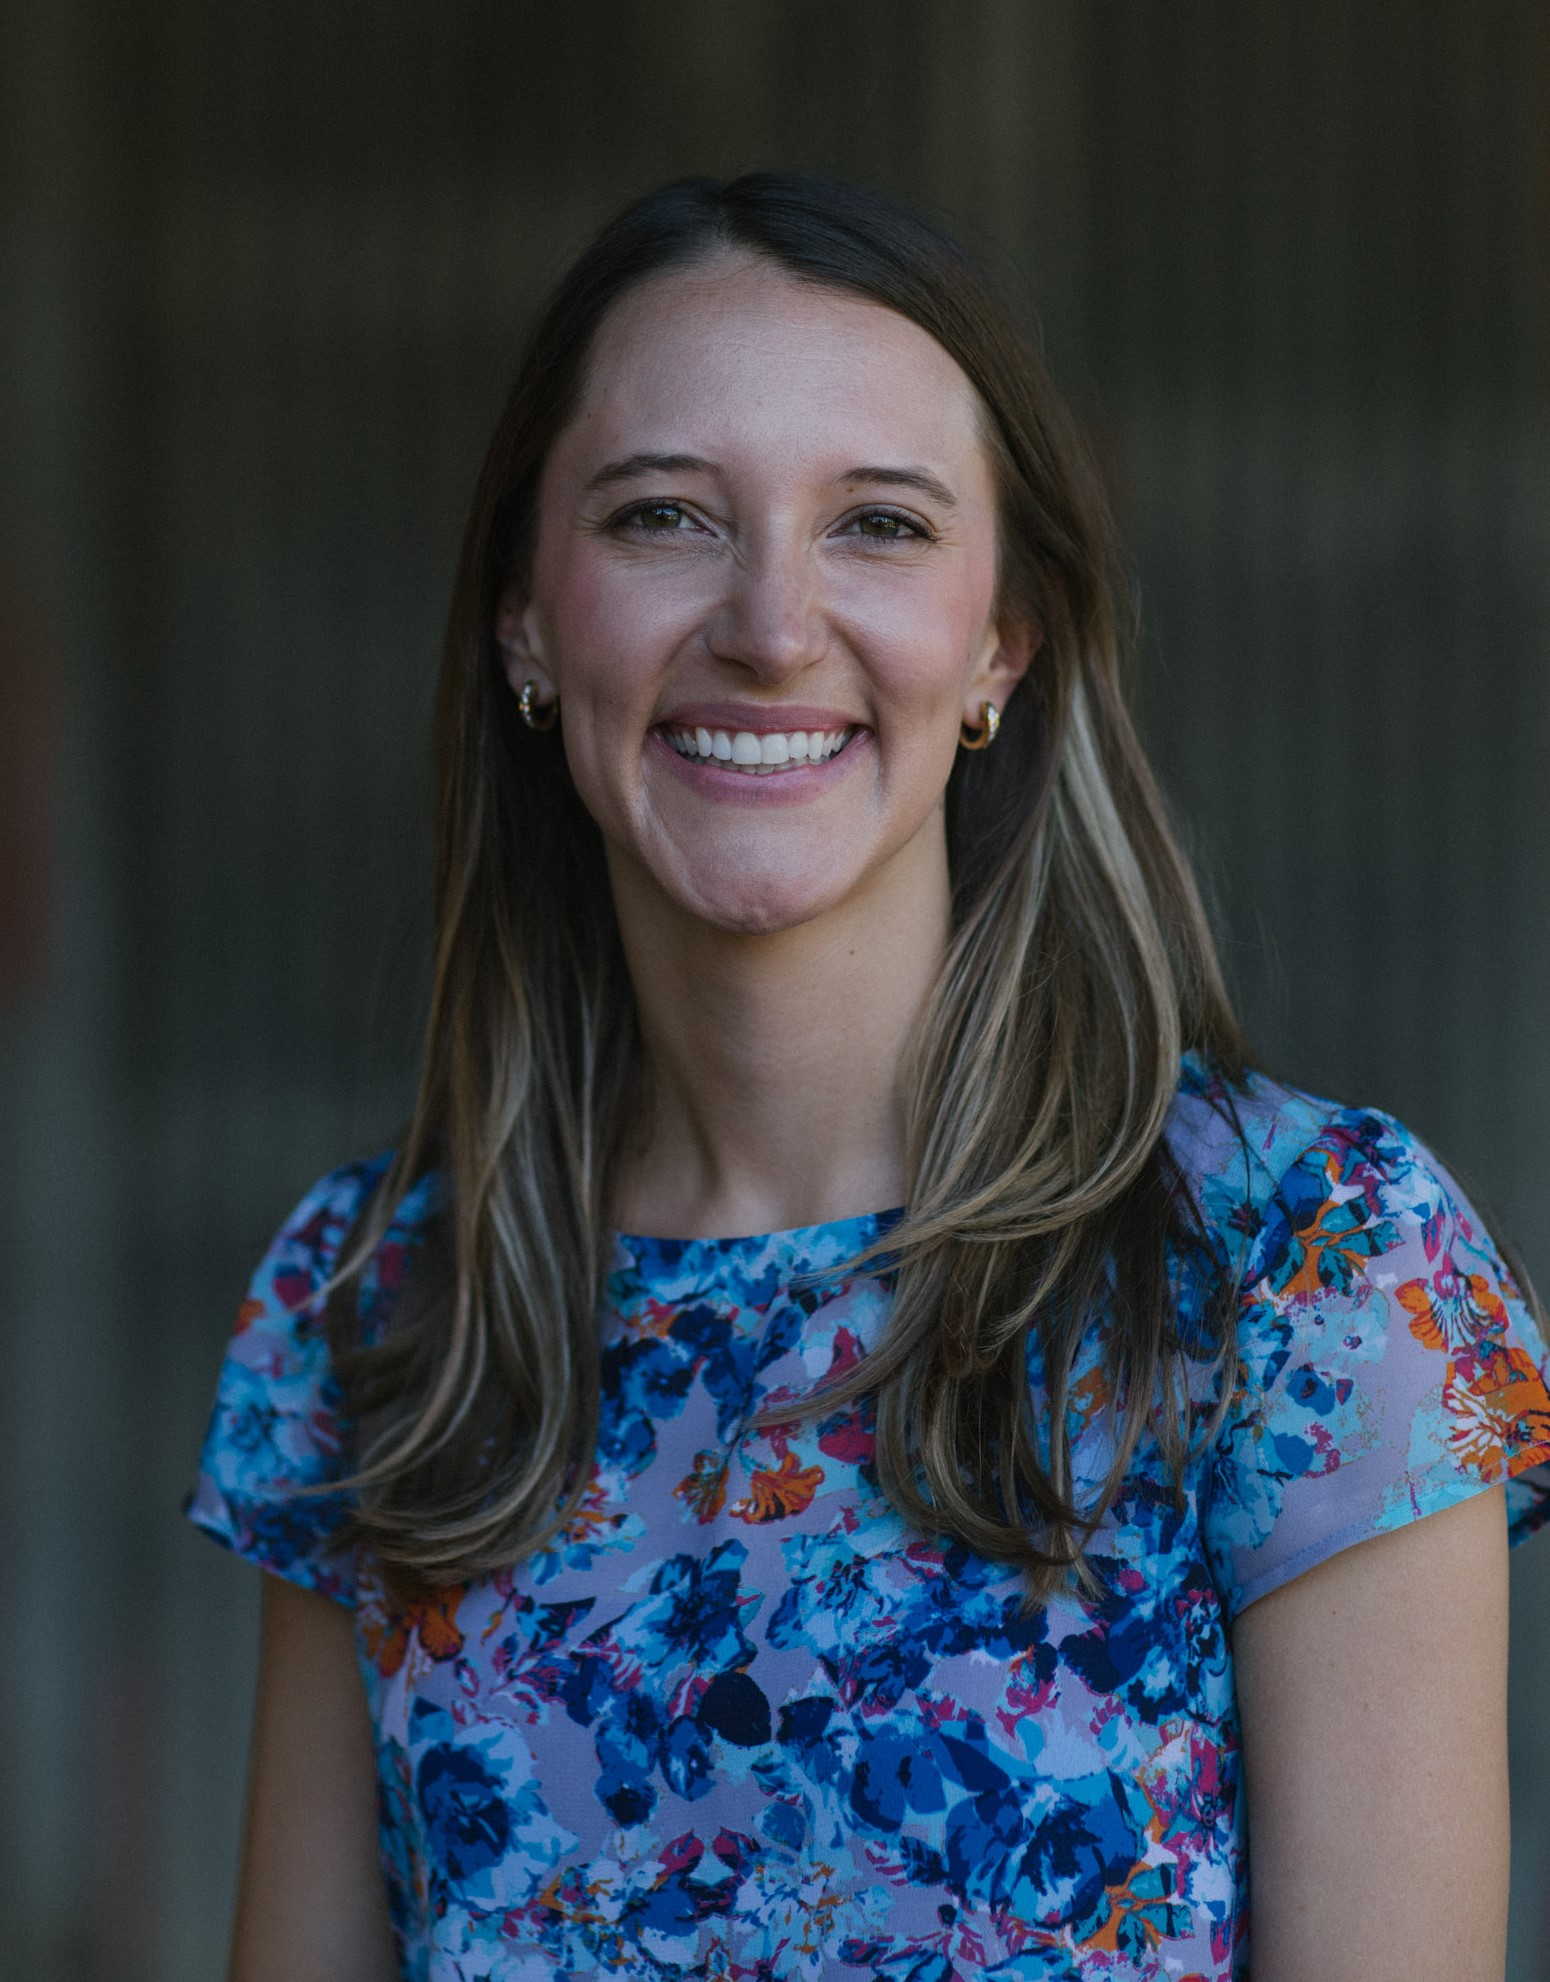 Jennifer Burns - Jennifer graduated from her FCC master in 2016 and she has just launched a new brand! Her will to deeply understand the current food system shaped her carreer since day1. Check out why she chose Unisg in the first place and where she is now!